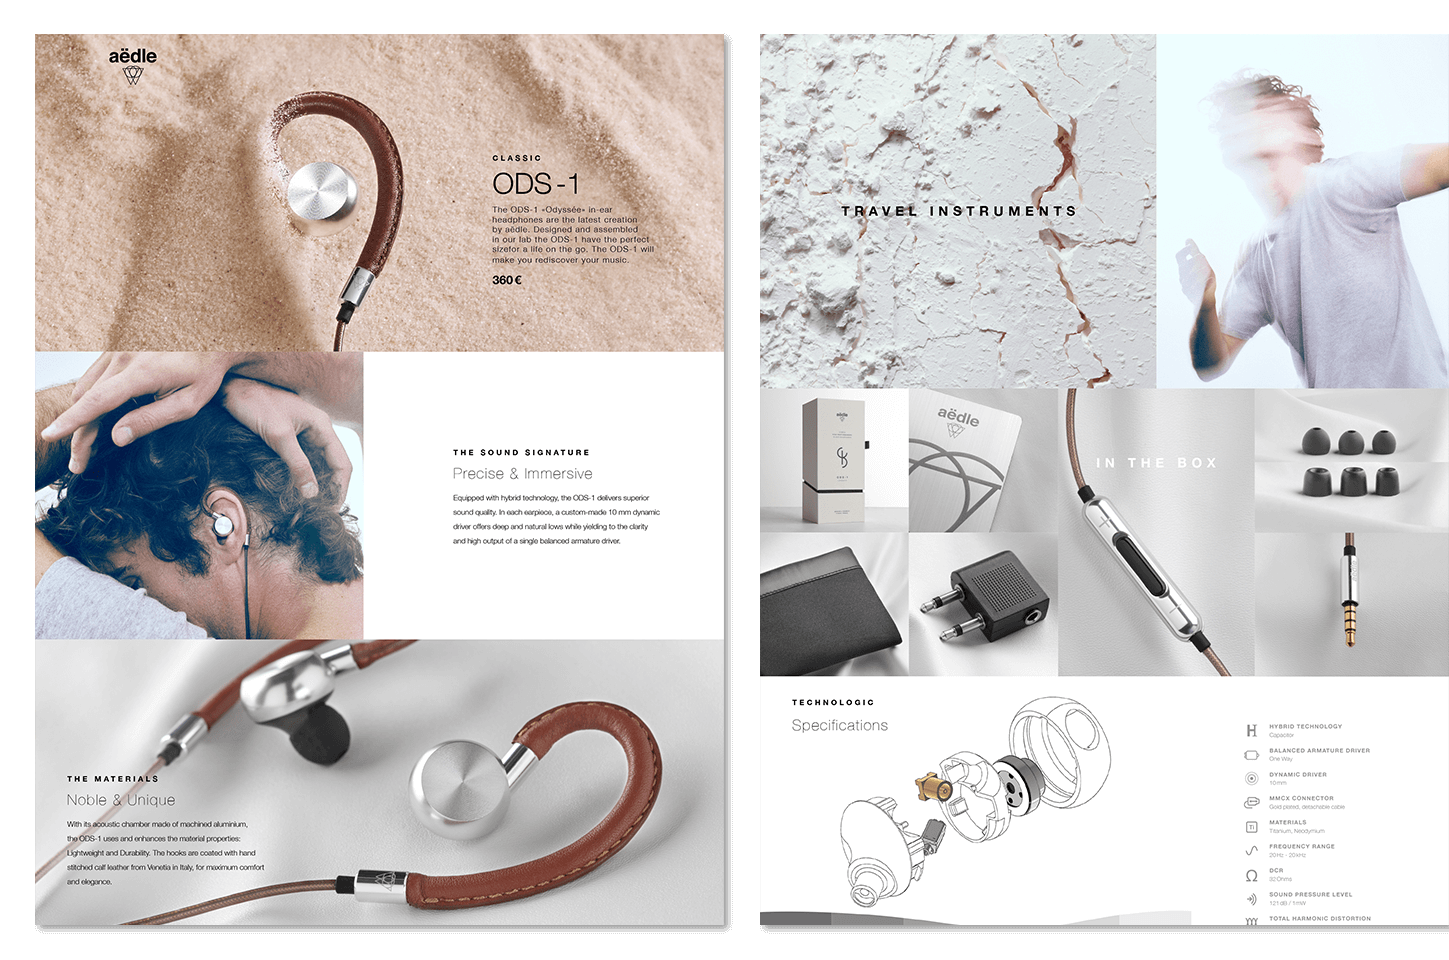 aedle-ods1-branding_09